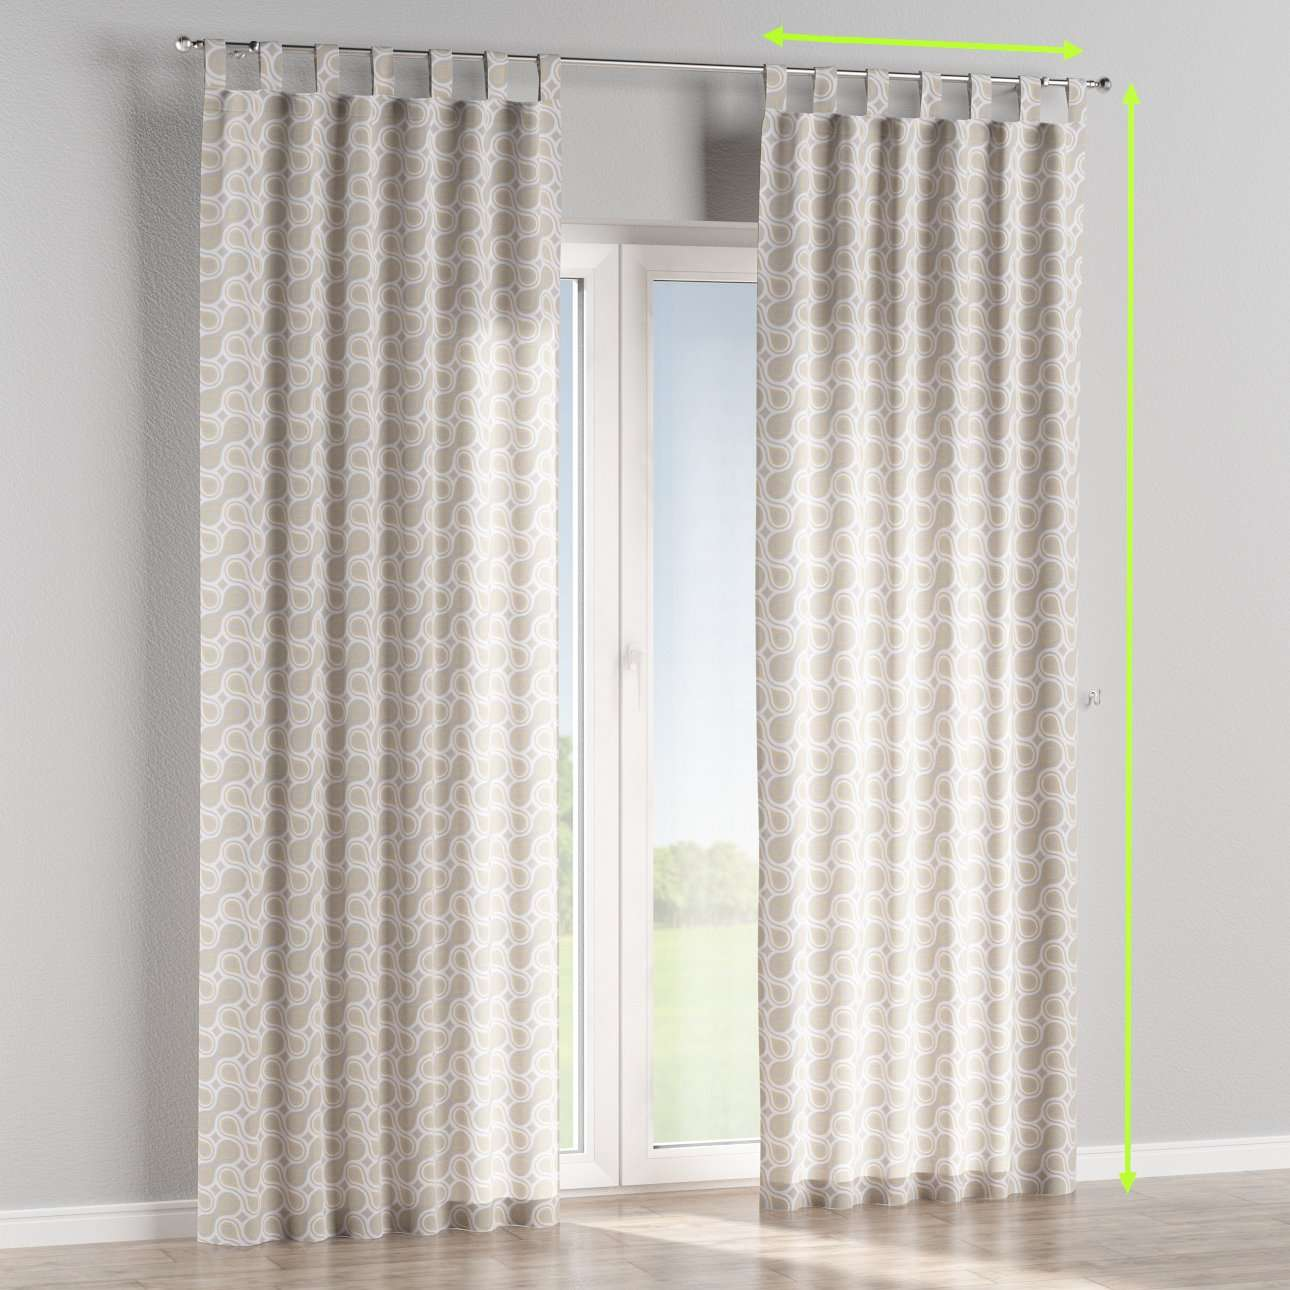 Tab top lined curtains in collection Flowers, fabric: 311-11